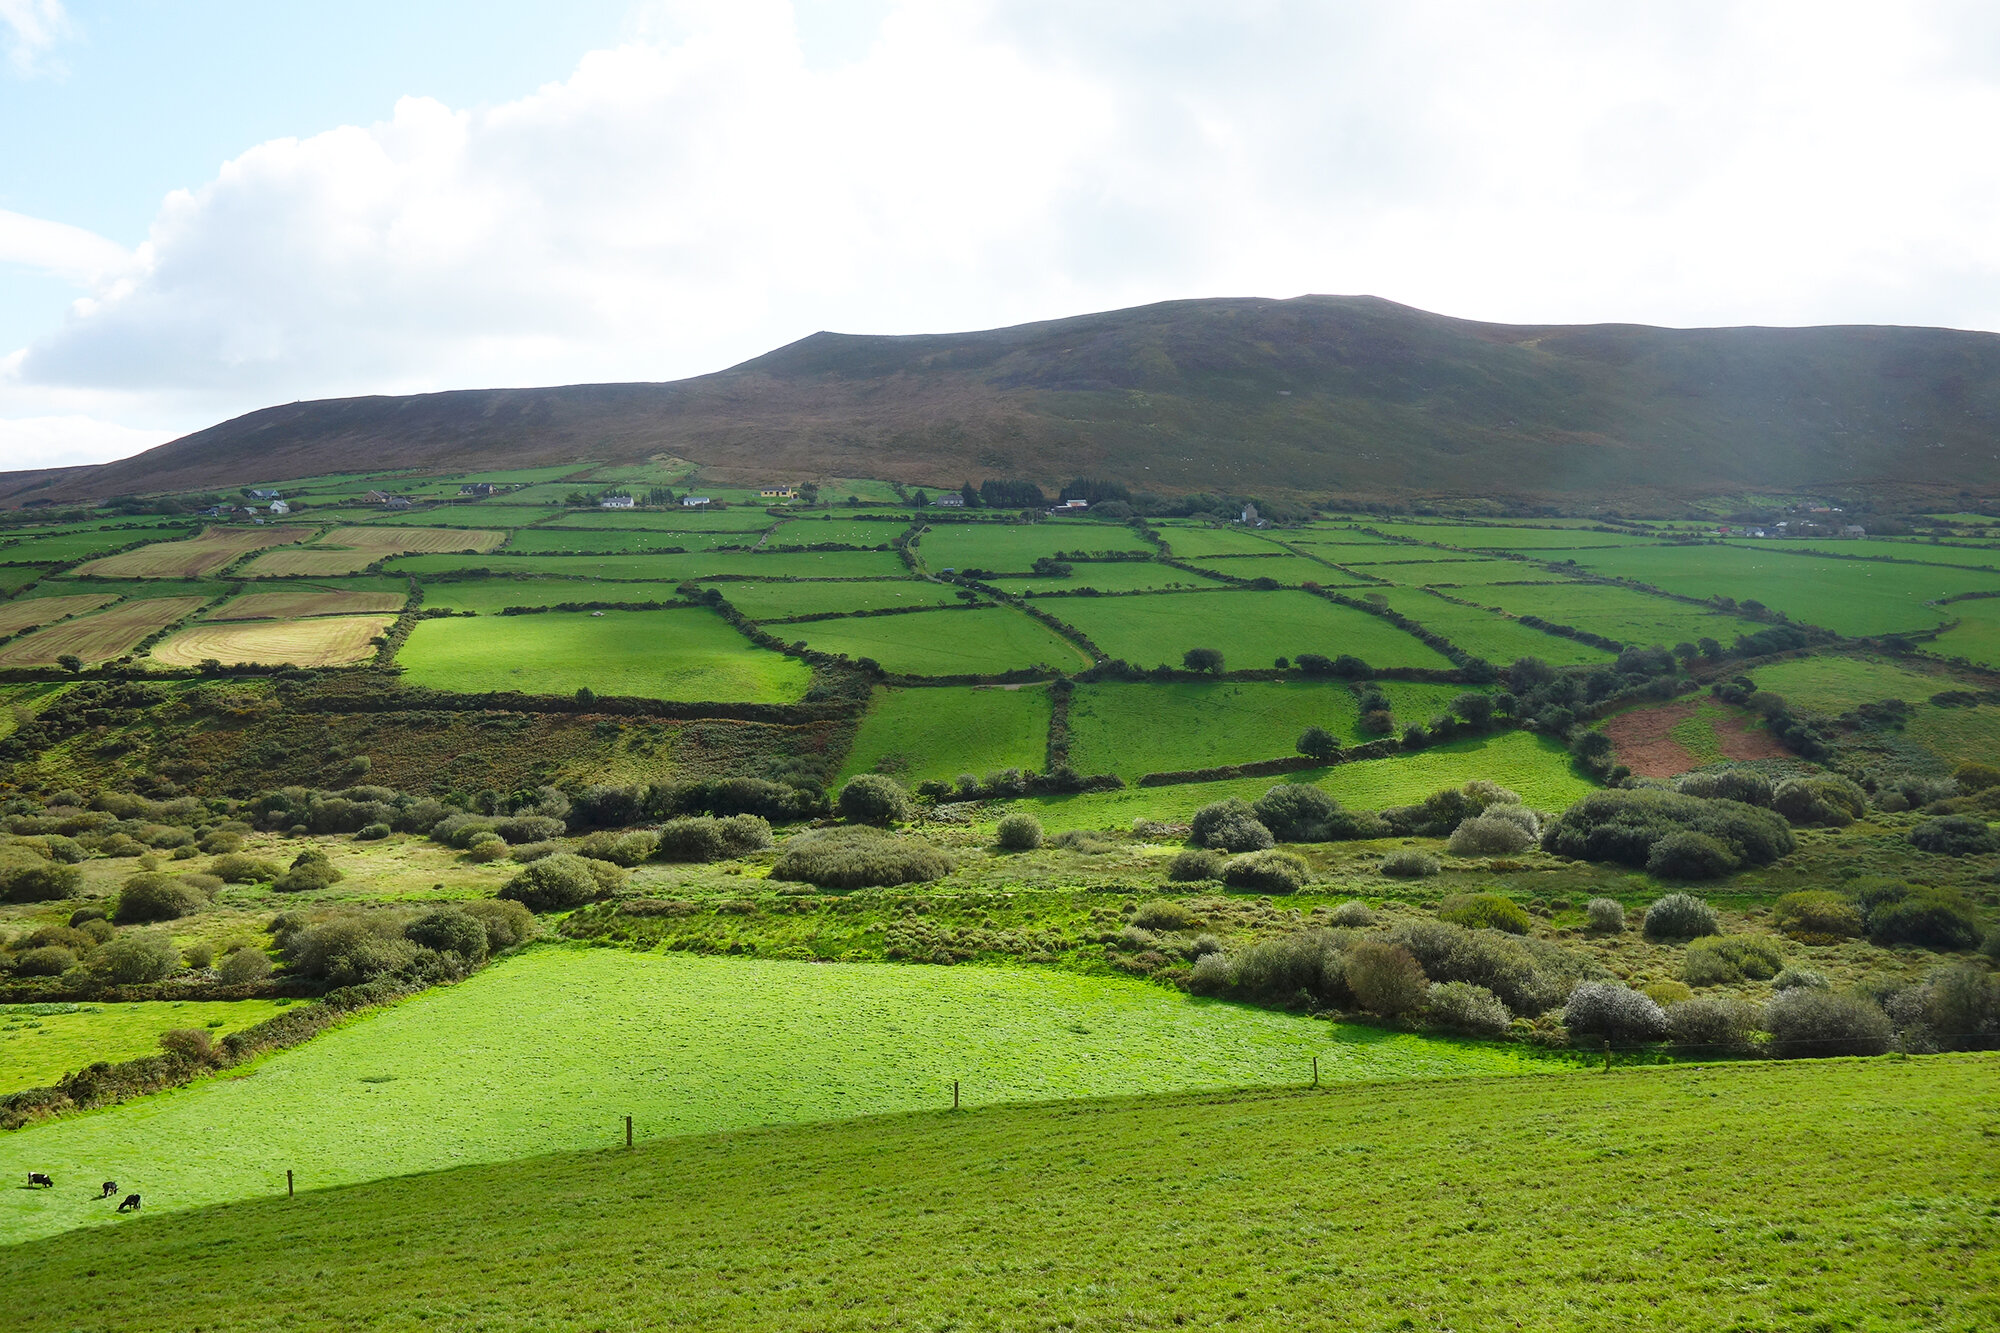 Grazing pastures and agricultural fields separated by stone walls are characteristic of the landscape in this area of the Dingle Peninsula, Republic of Ireland. Here brambles have grown over many of the dry stacked walls in the distance.